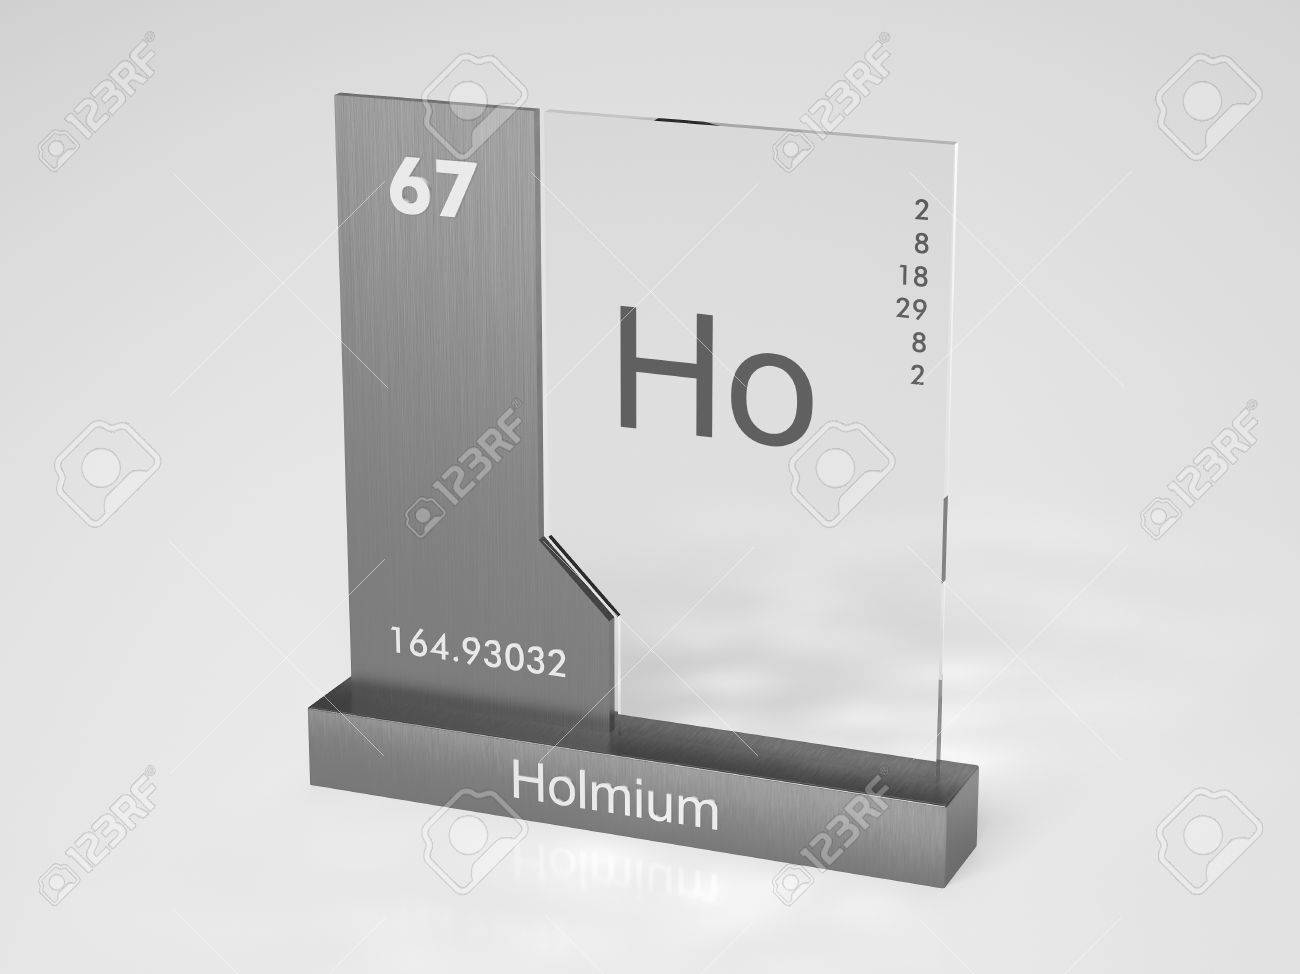 Holmium Symbol Ho Chemical Element Of The Periodic Table Stock